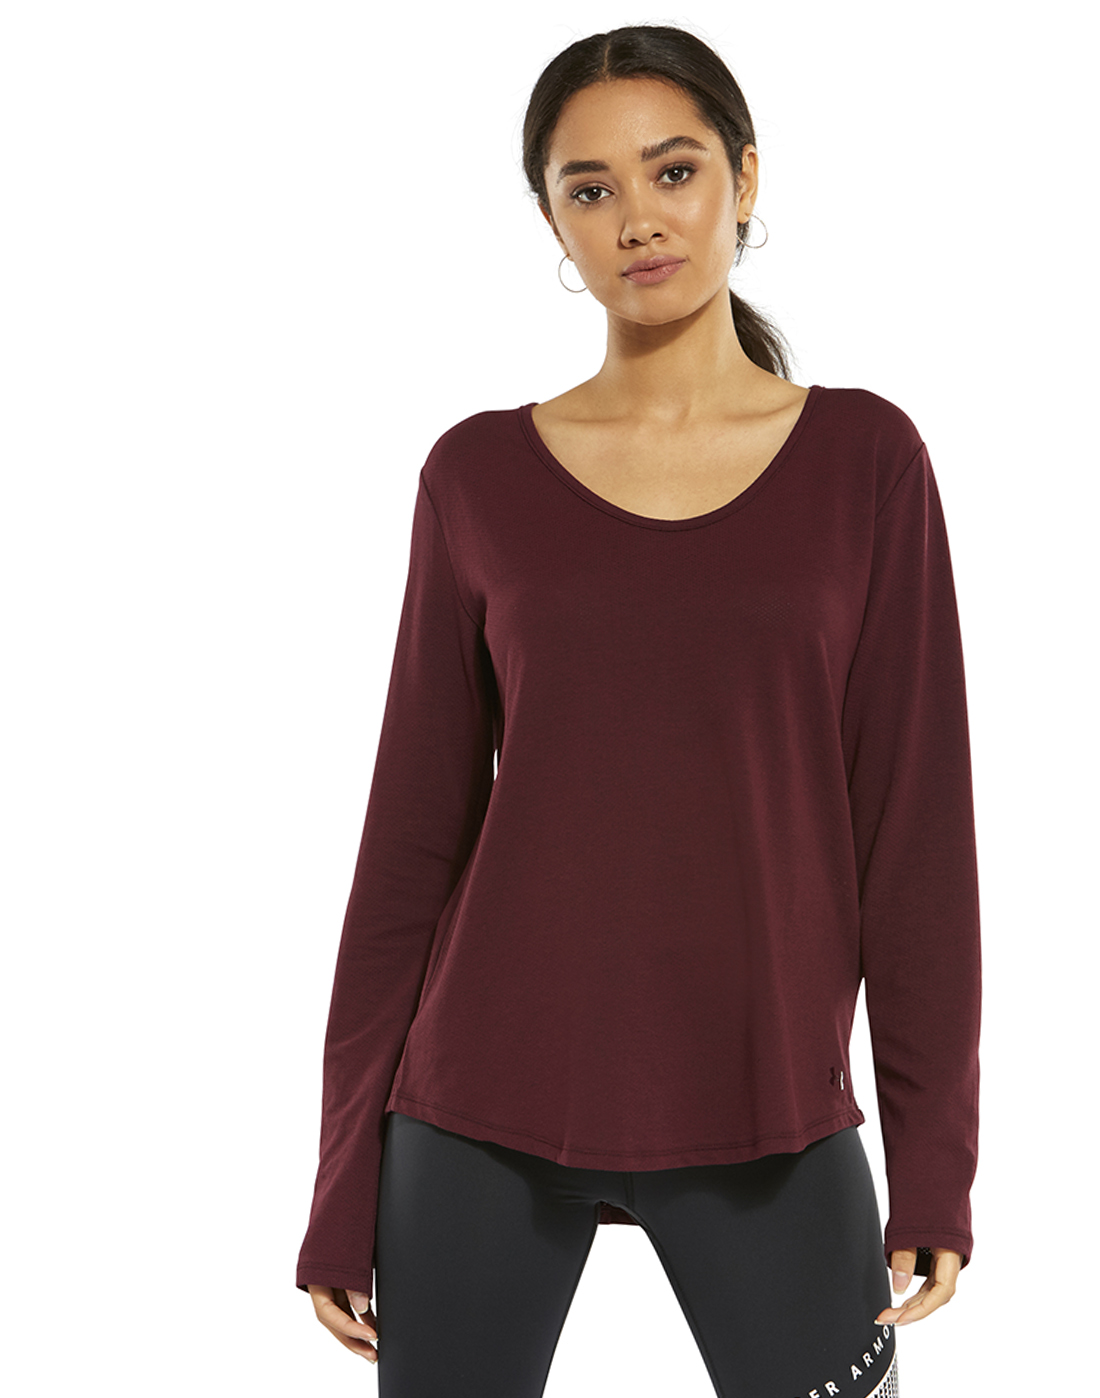 354102f0d12f Women's Burgundy Under Armour Open Back T-Shirt | Life Style Sports